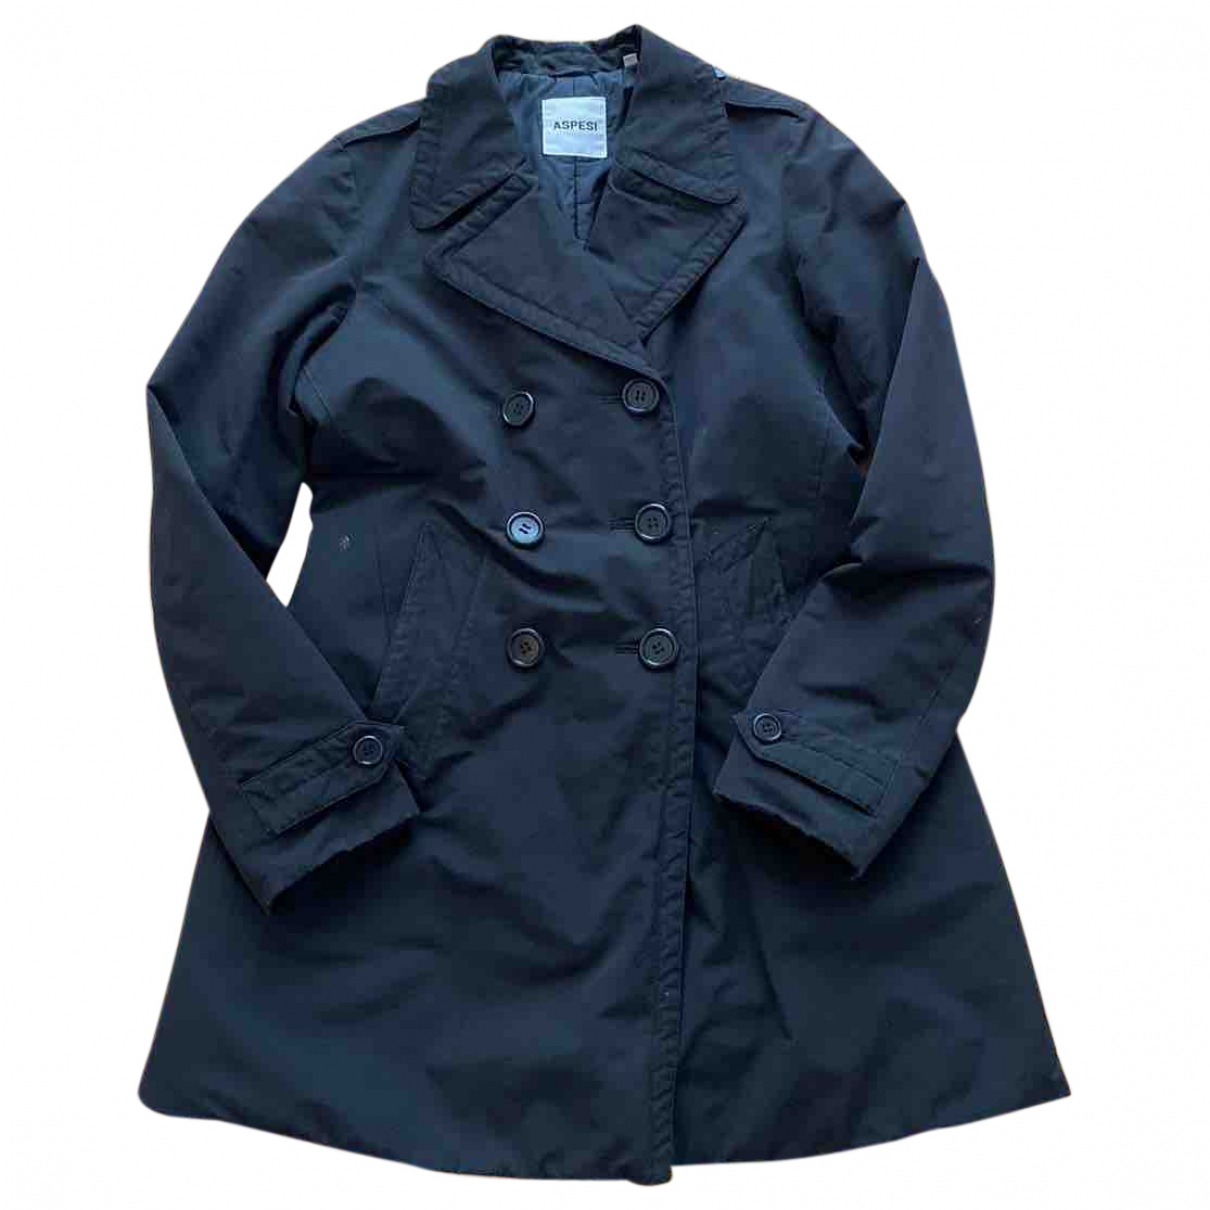 Aspesi \N Blue Trench coat for Women XS International